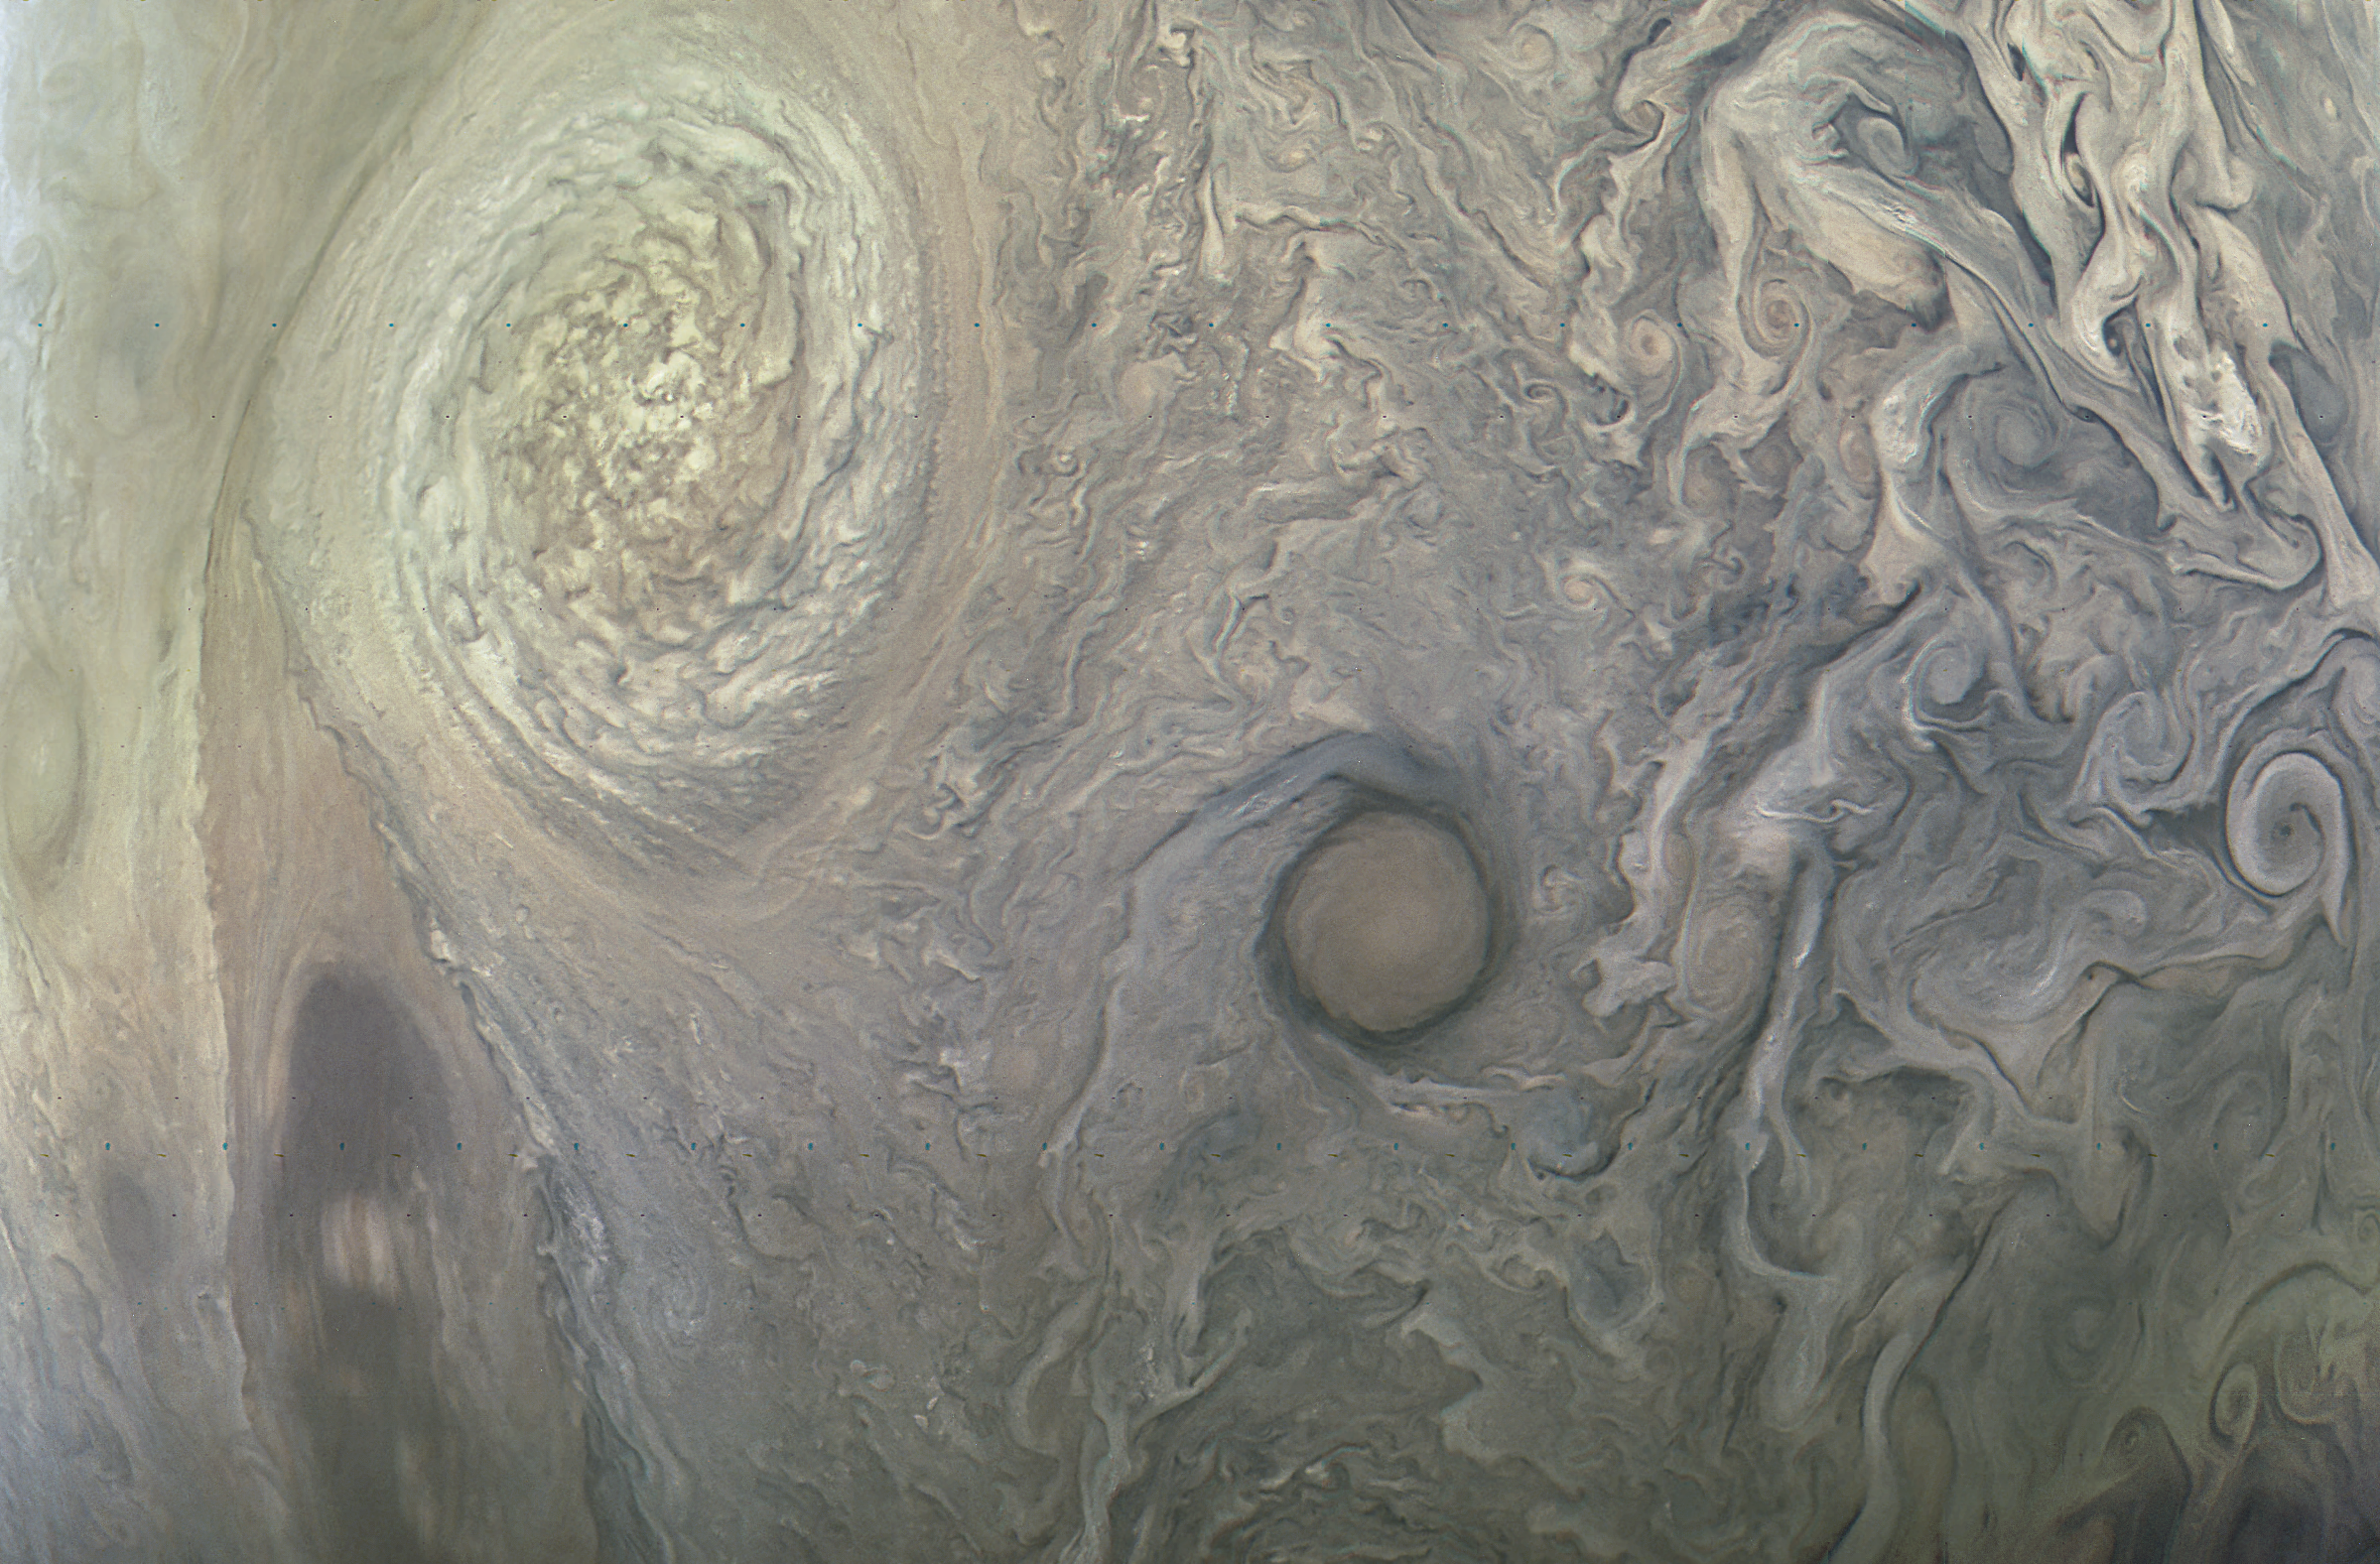 Great Red Spot Archives - Universe Today